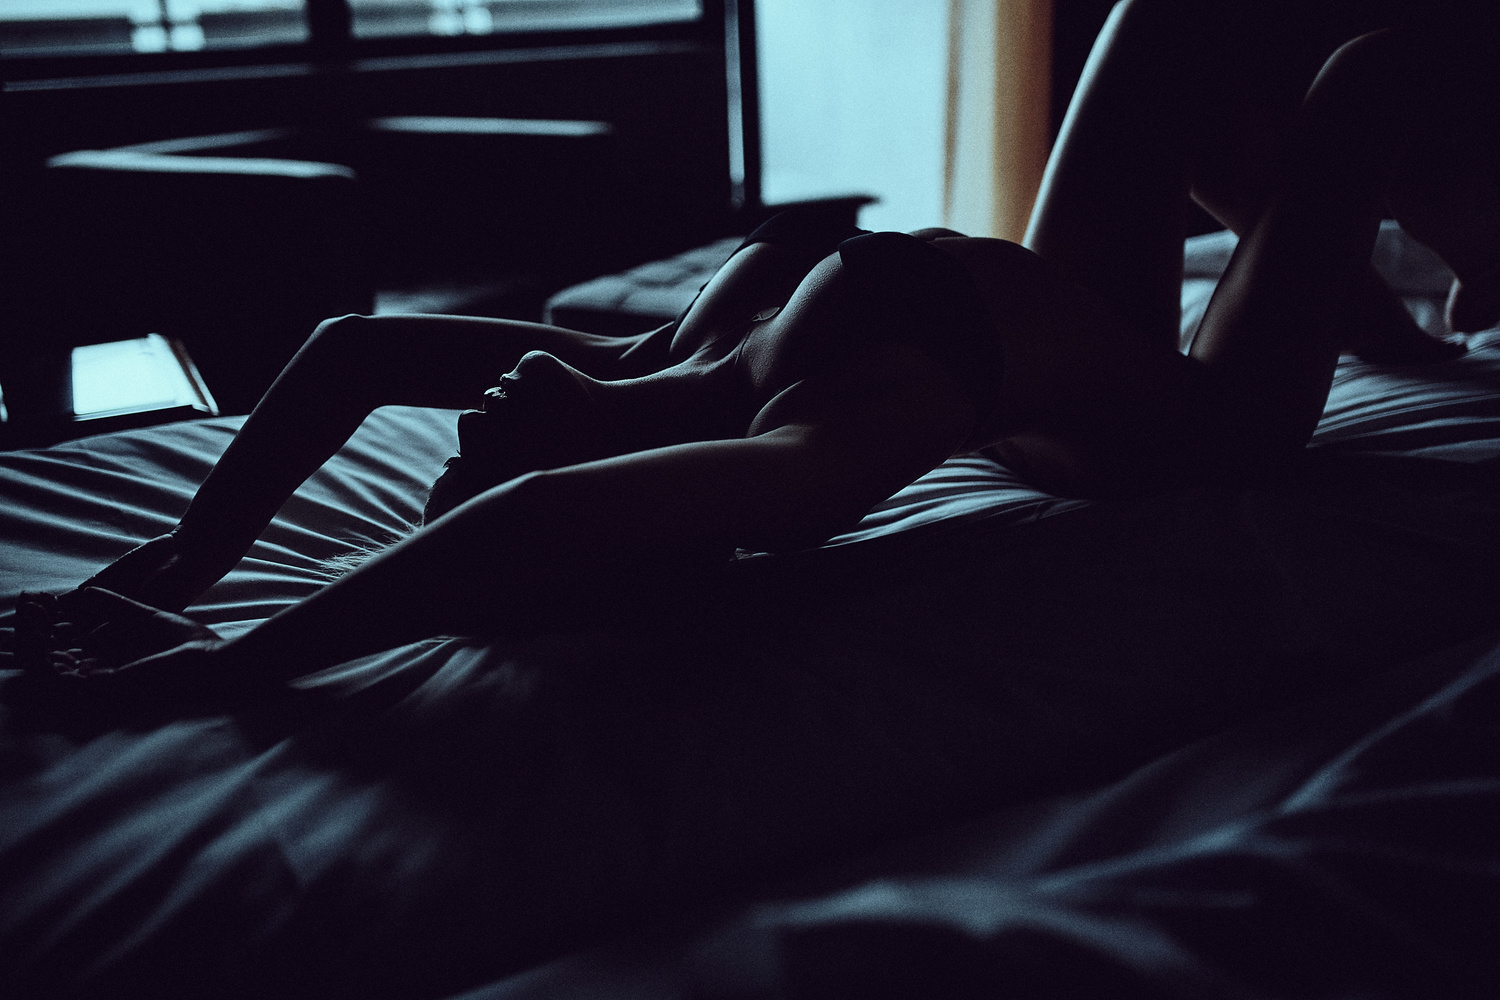 boudoir photography ideas